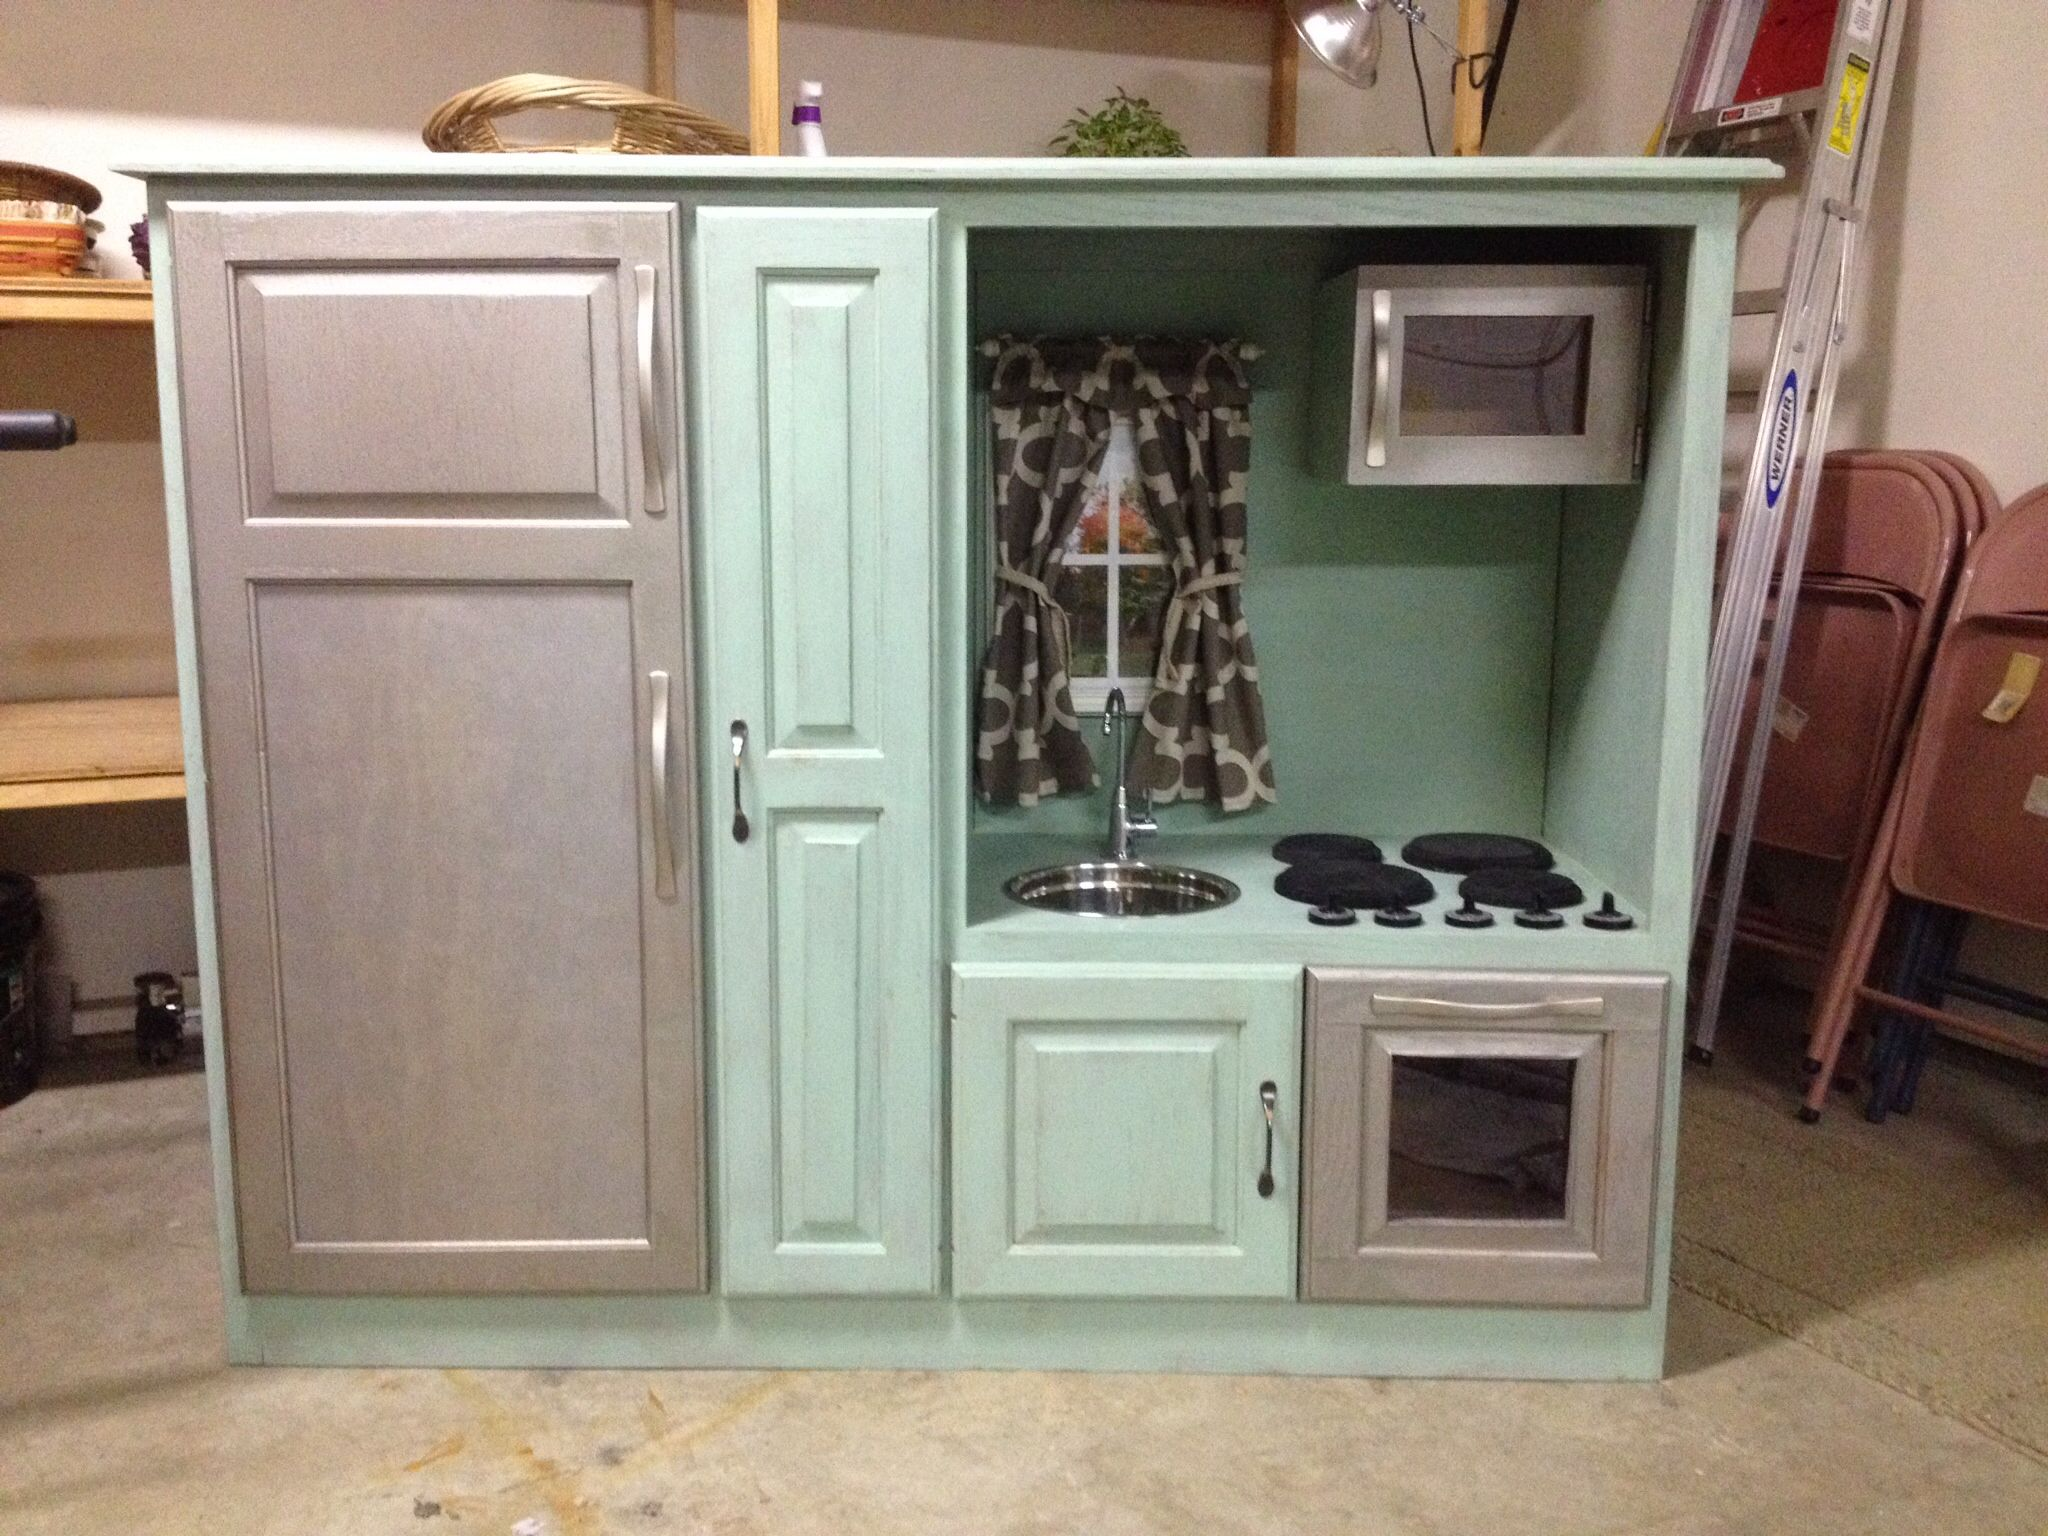 DIY PLAY KITCHEN! From an upcycled entertainment center